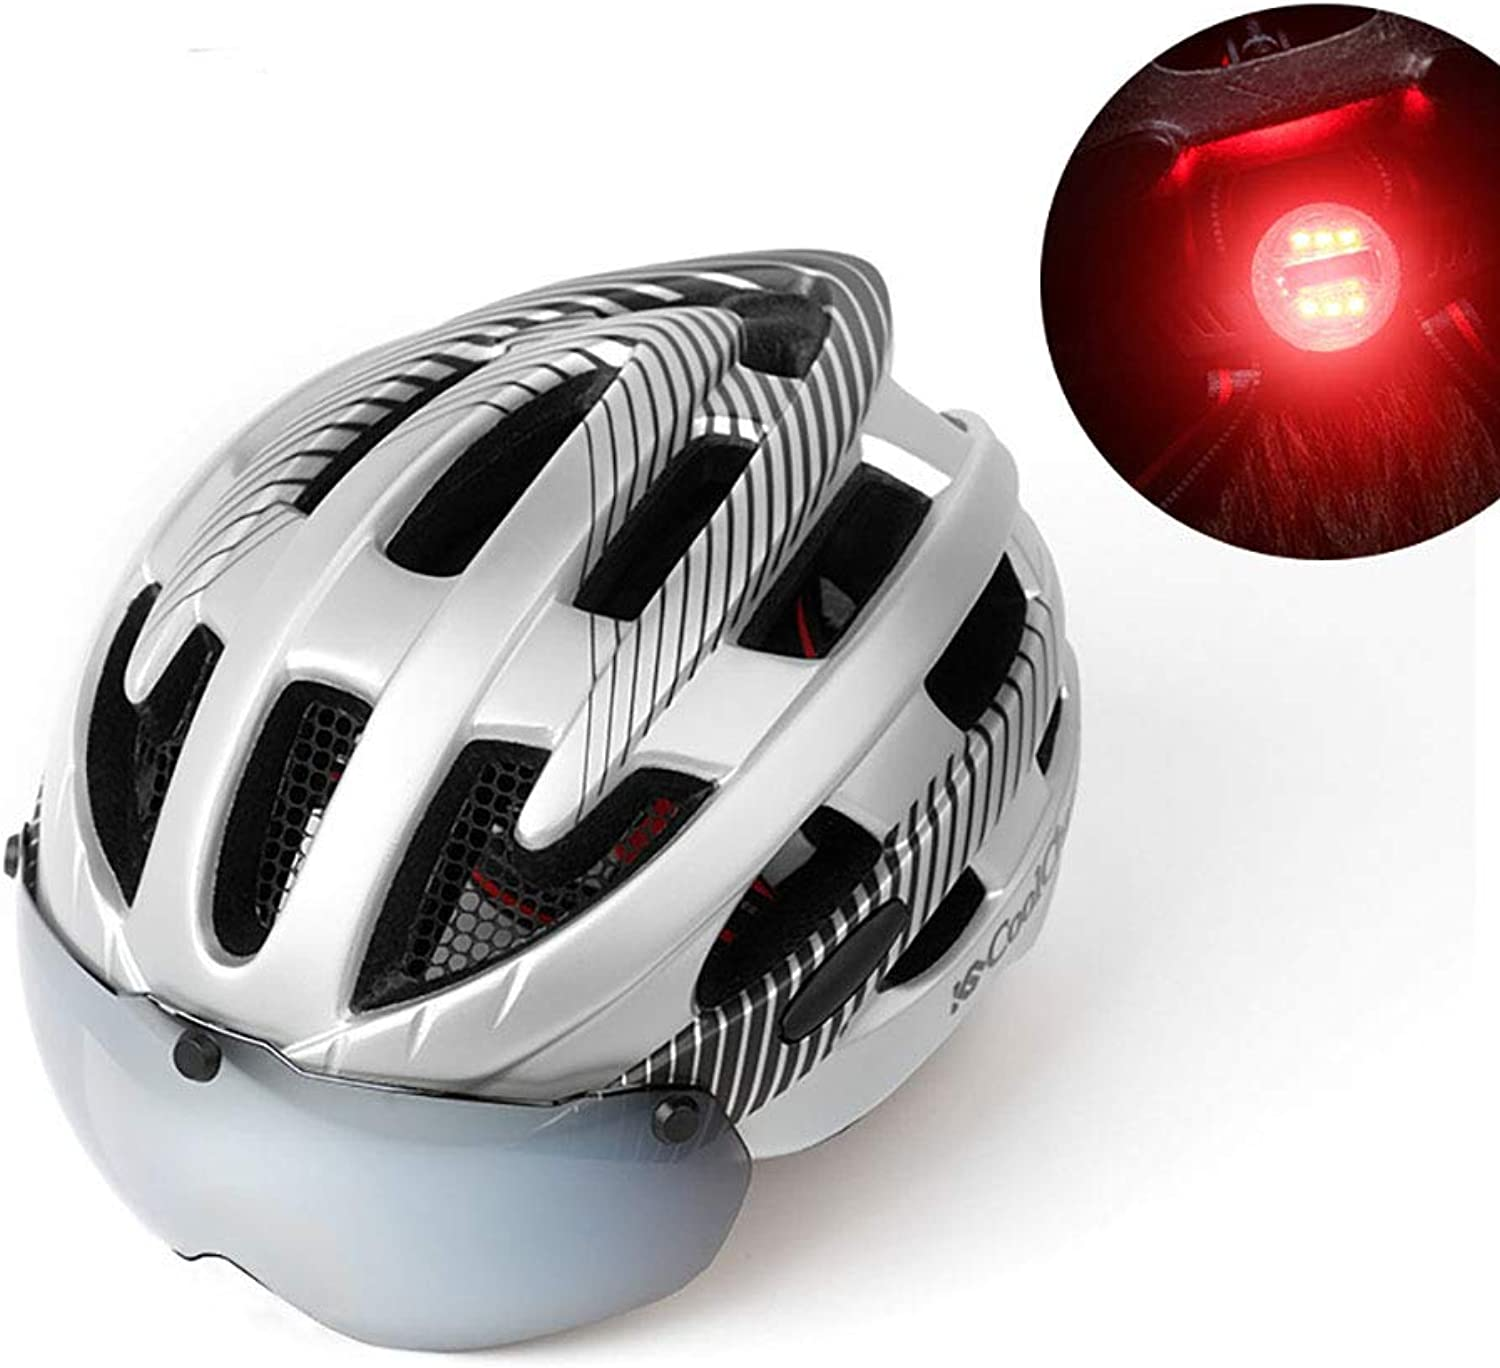 LED Bike Helmet Taillight Warning Magnetic Sunglasses OnePiece Process Breathable Safety Predection Suitable for Road Bike Mountain Cycling Men&Women